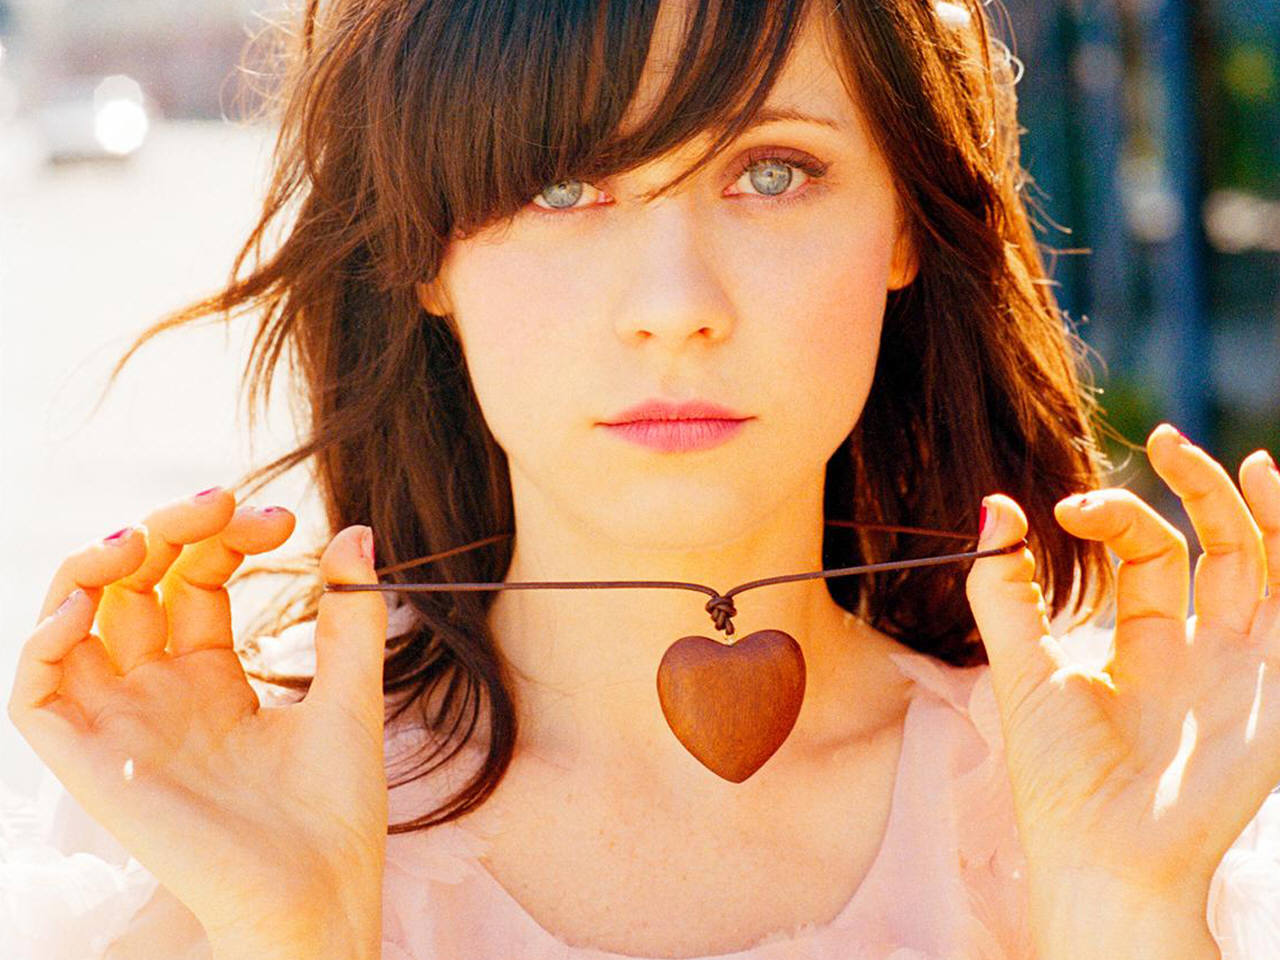 Zooey Deschanel - Gallery Photo Colection